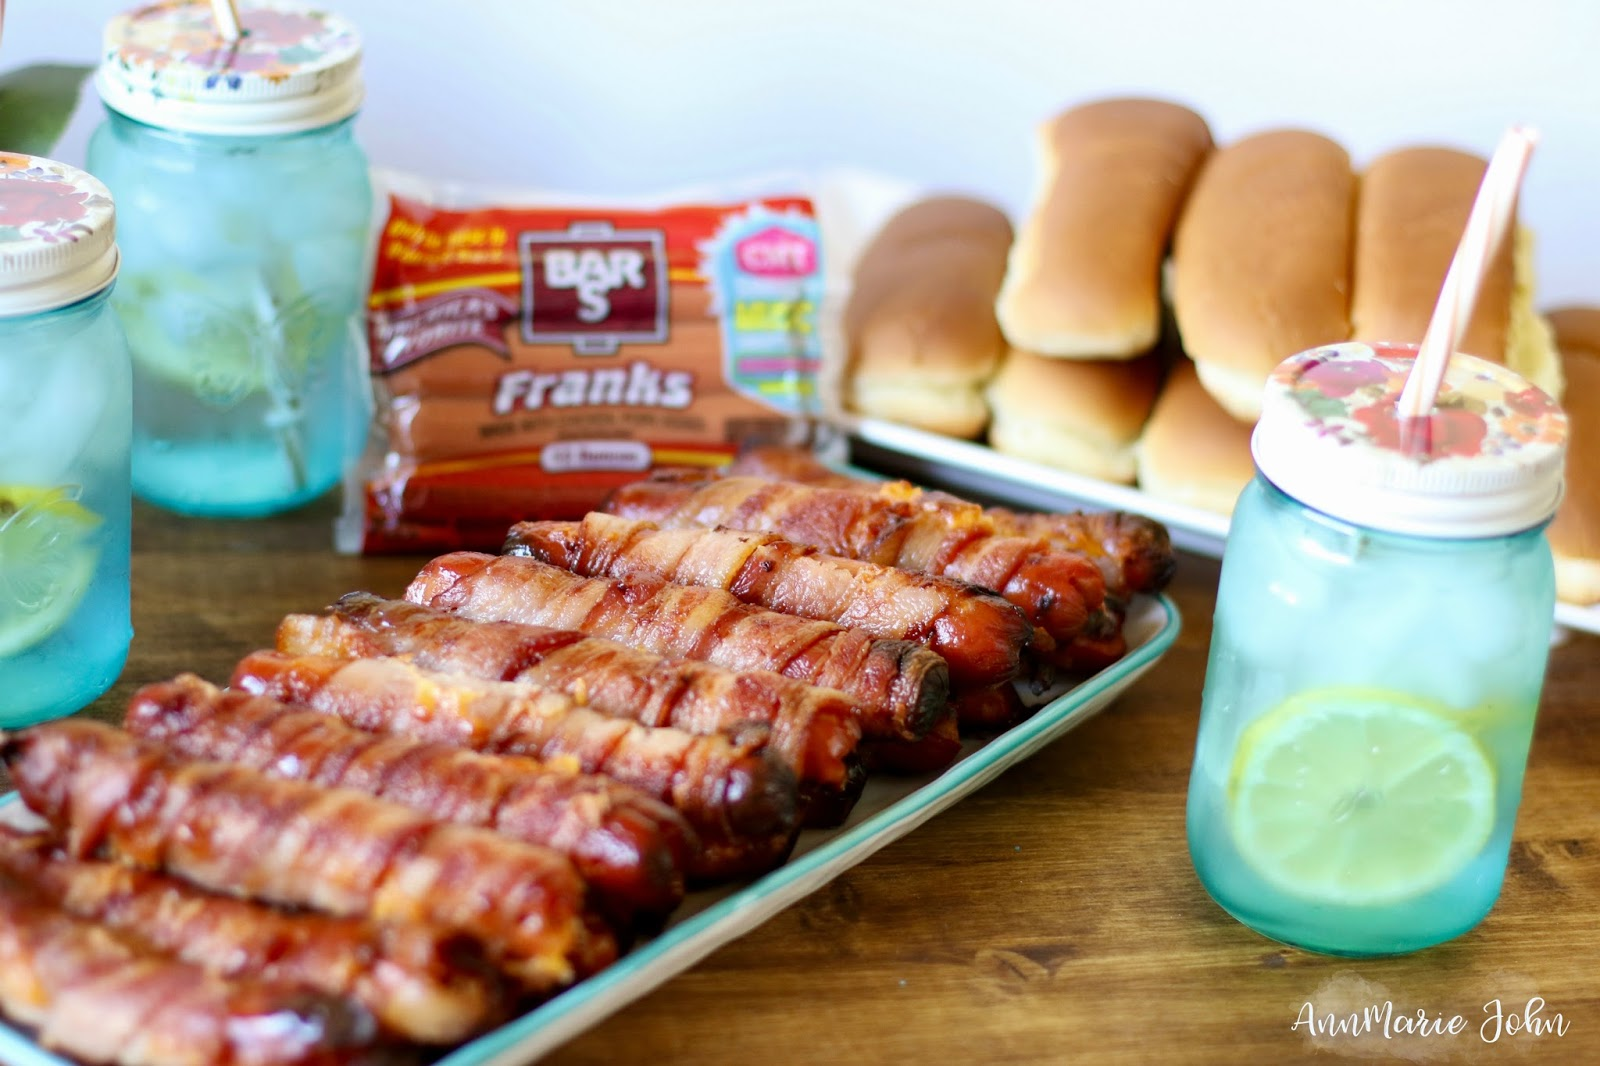 Bacon Cheese Wrapped Franks - #SummerofMusicSweeps #BarSCMTBlogger